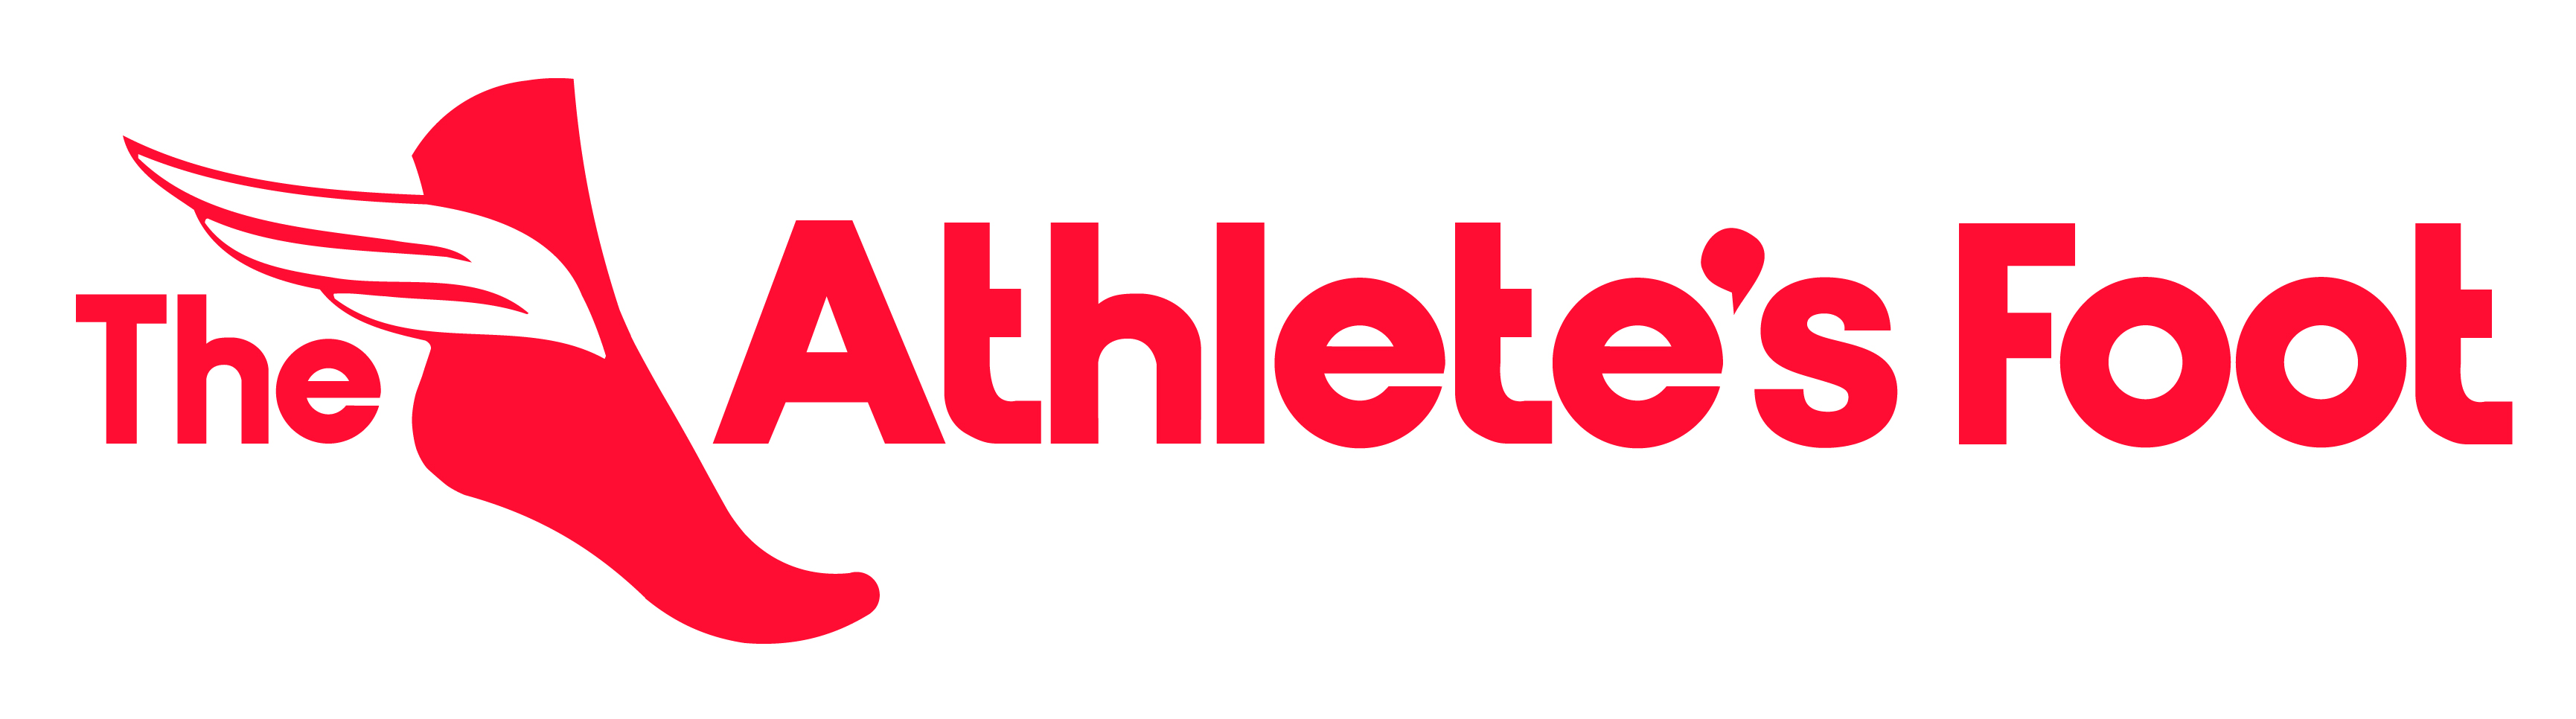 Franchisor And Seller Of Athletic Footwear Logo Quiz